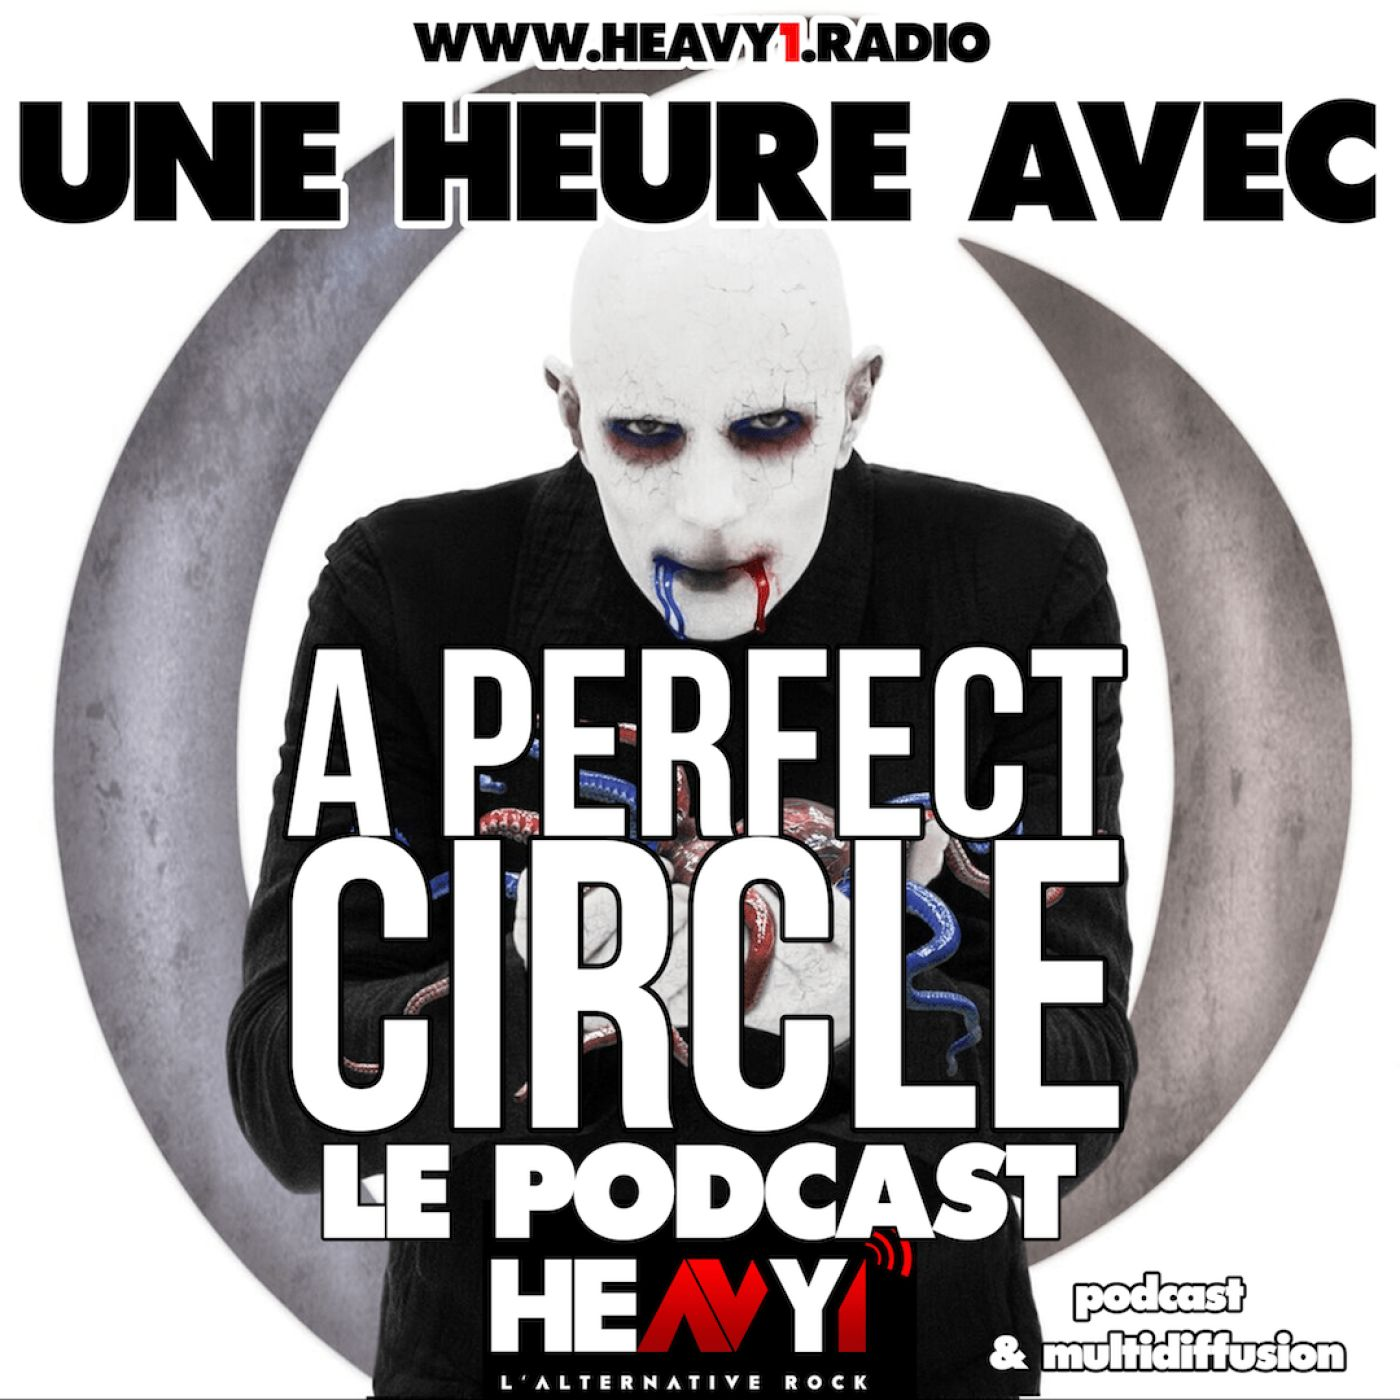 Une heure avec... A Perfect Circle